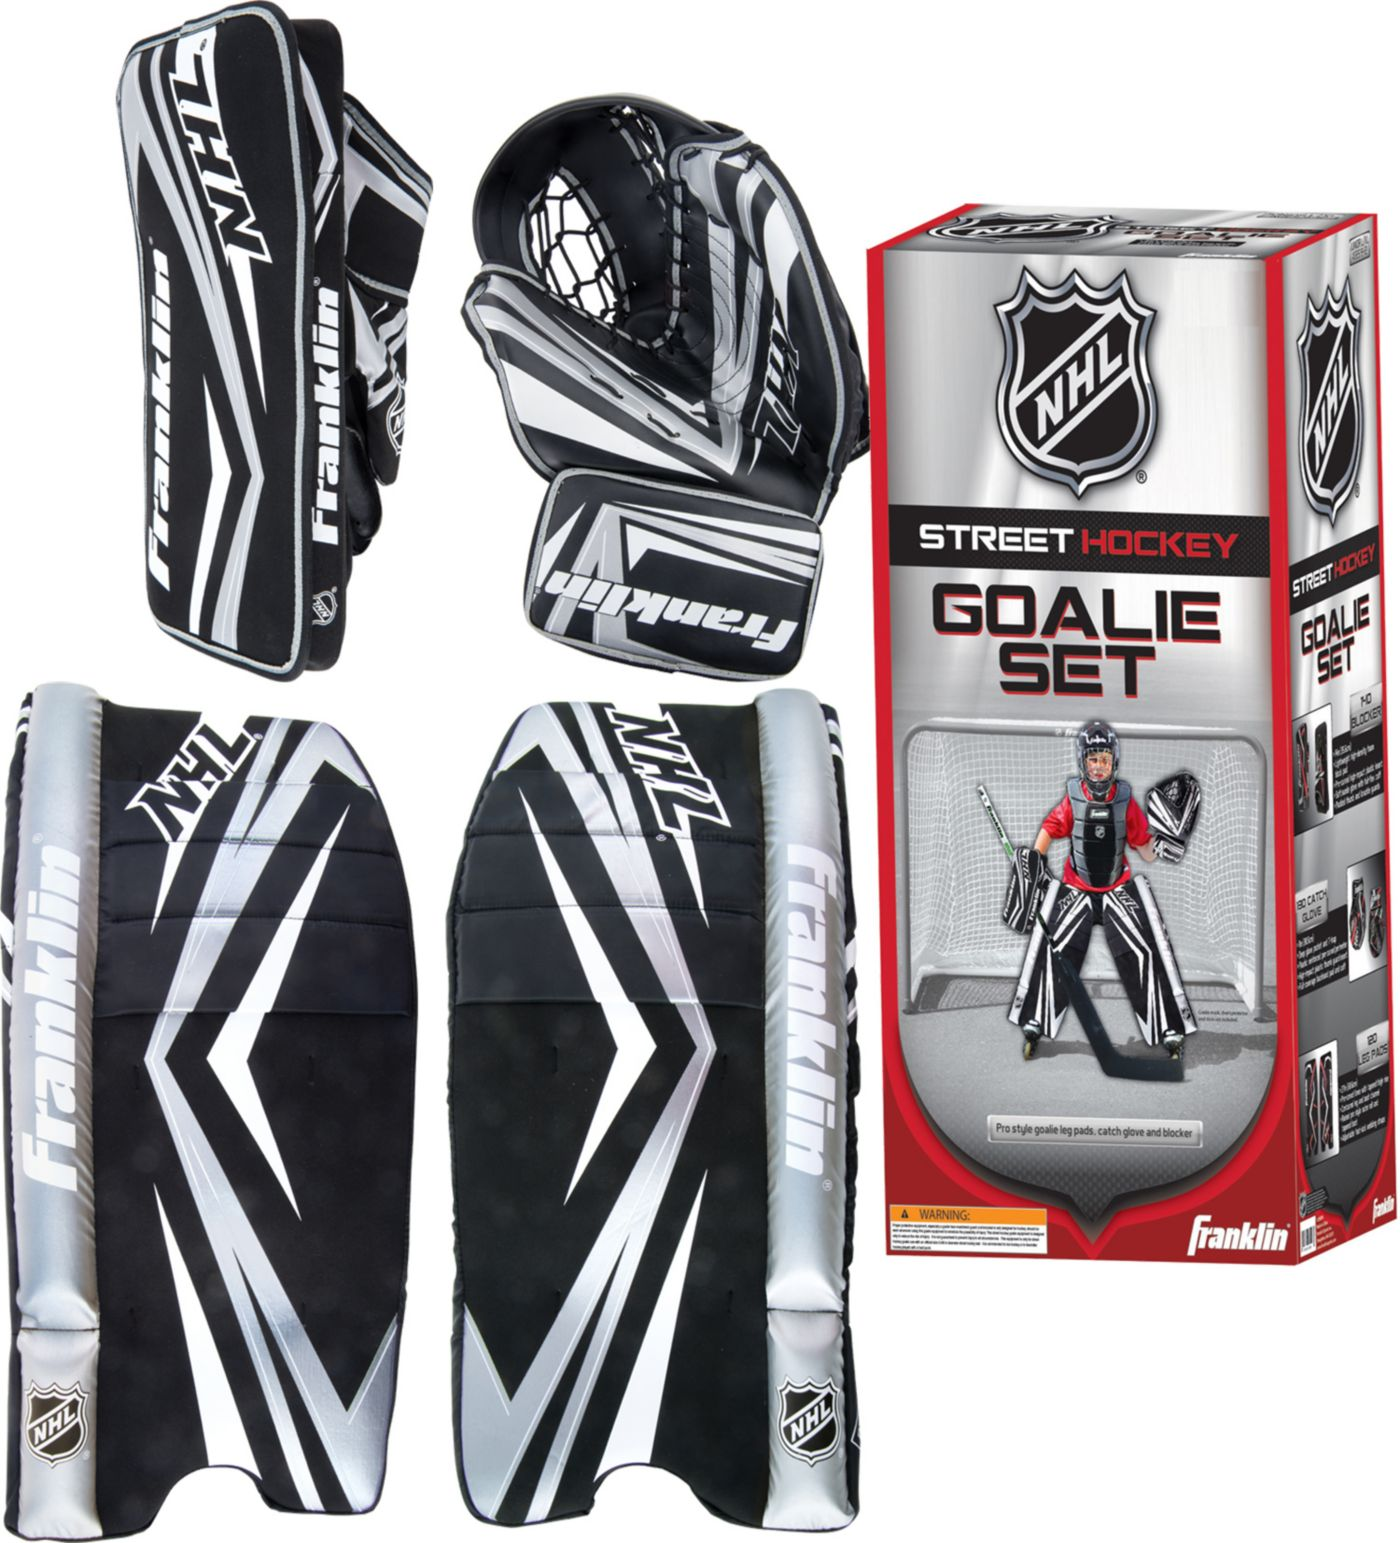 Franklin Junior NHL SX COMP 100 Street Hockey Goalie Set